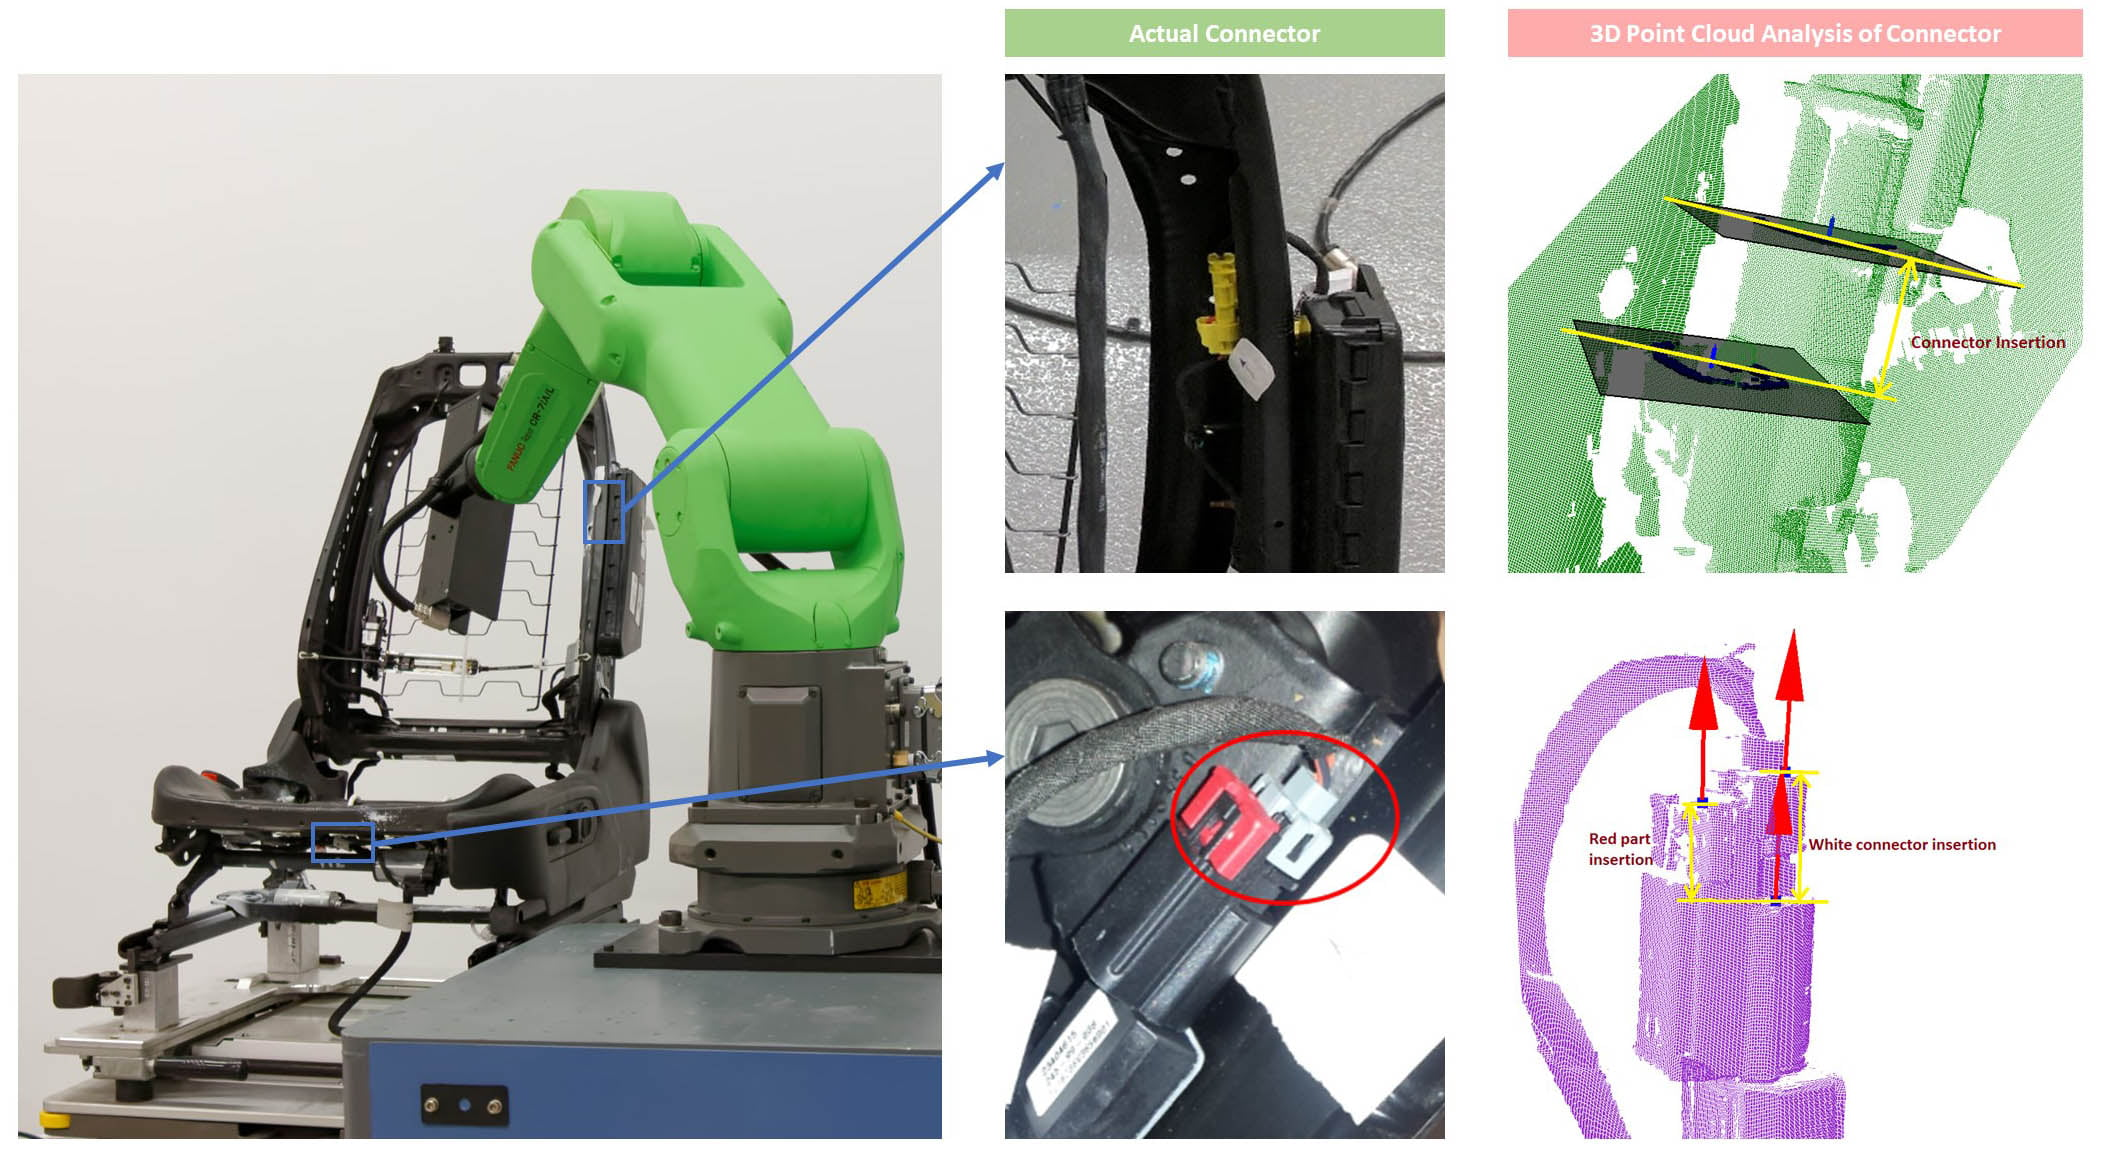 seat-inspection-point-cloud-analysis